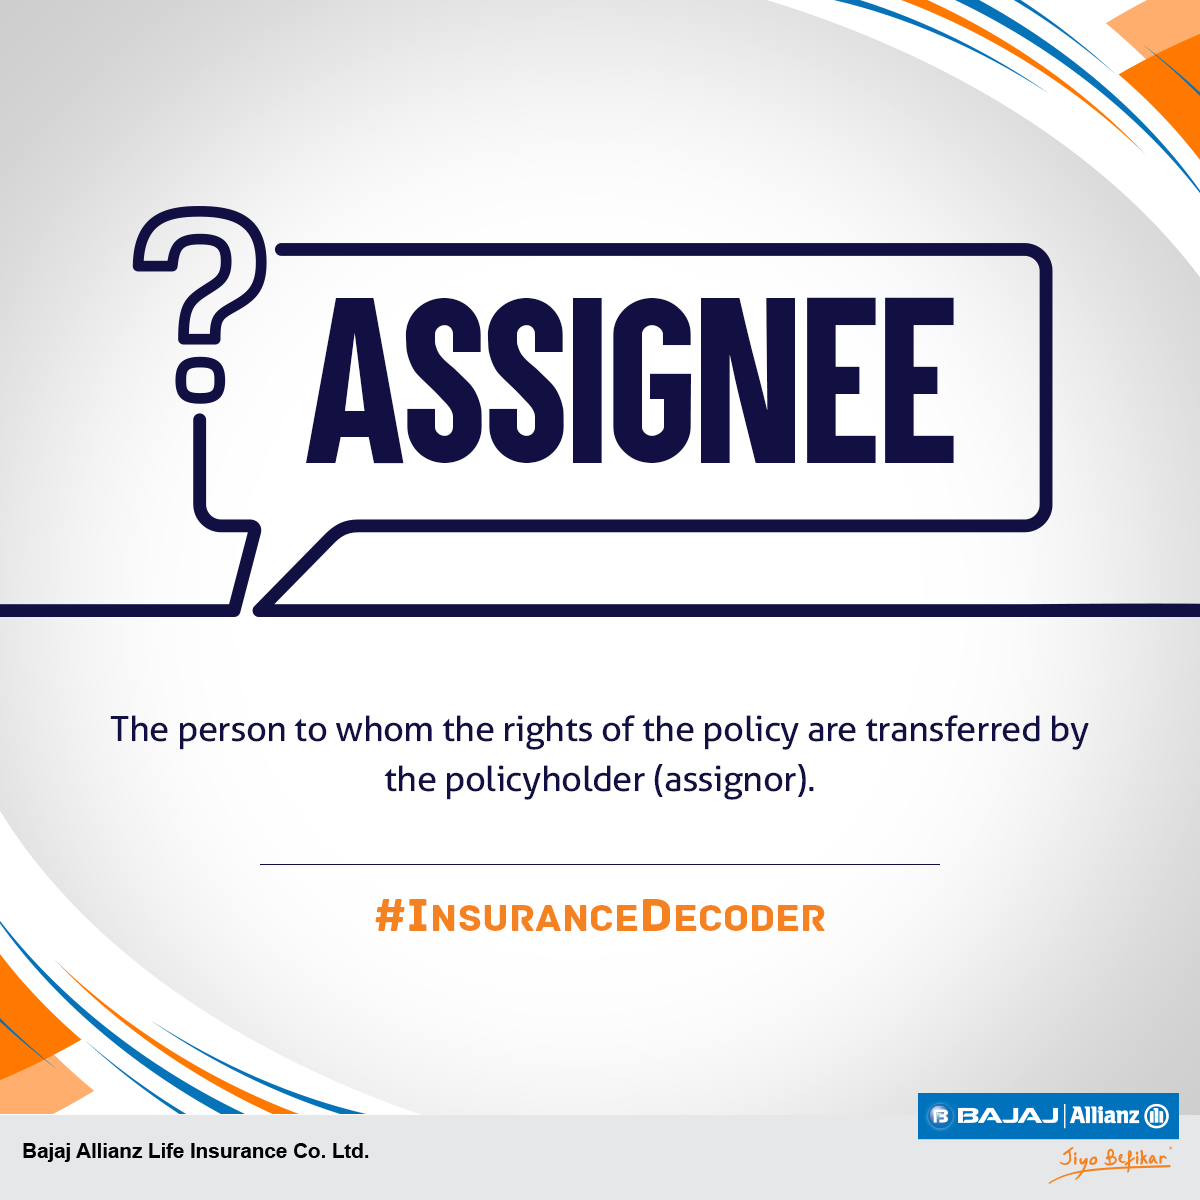 Don't get intimidated by insurance jargon. It is usually